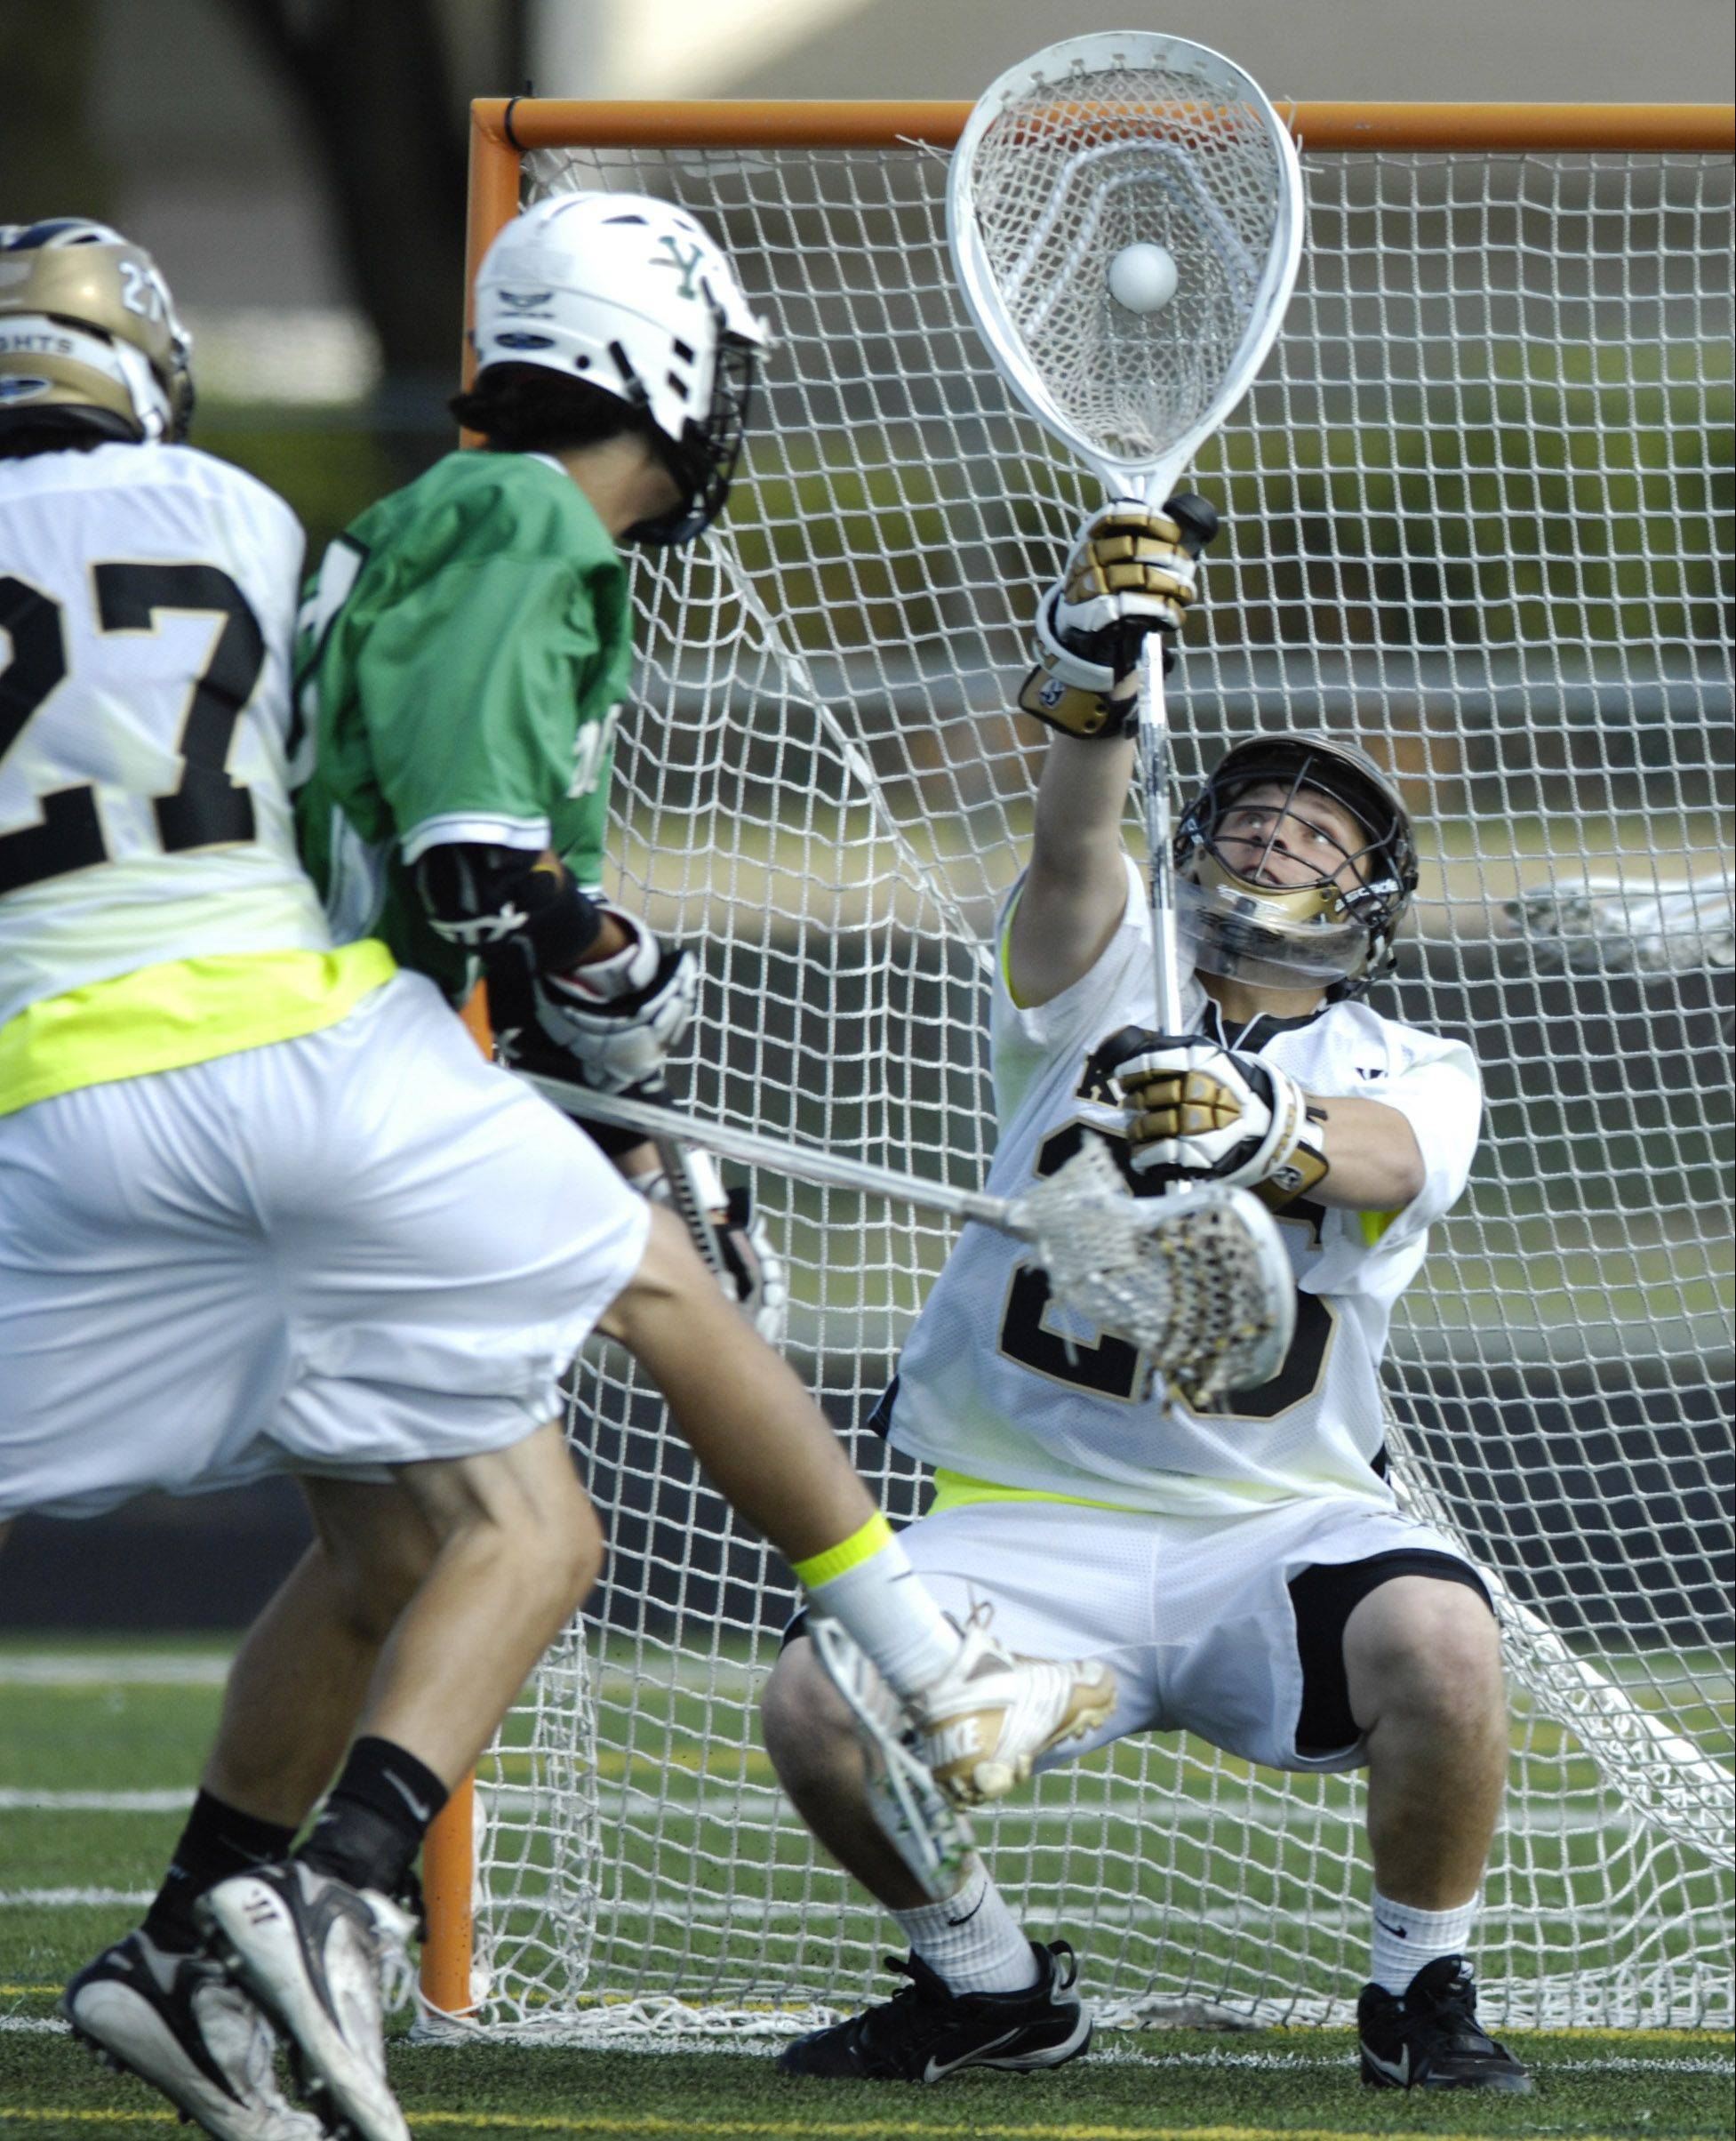 Grayslake North goalie Eric York reches up to make a save during the Lacrosse Cup championship game against York at Palatine High School on Saturday.